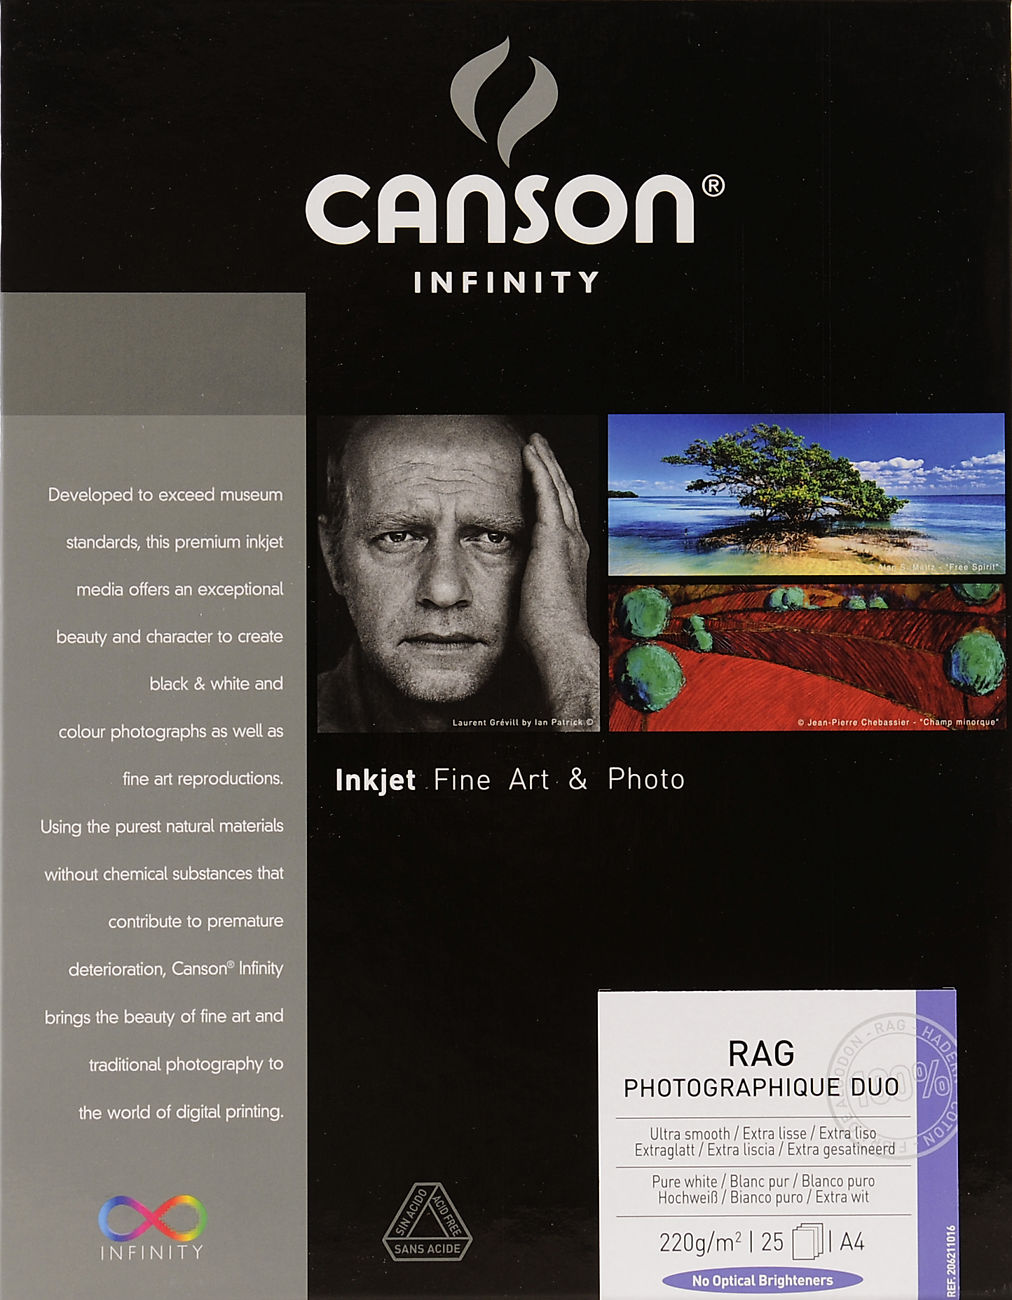 Canson Infinity Rag Photographique Duo 220gsm A3 Clearance Image